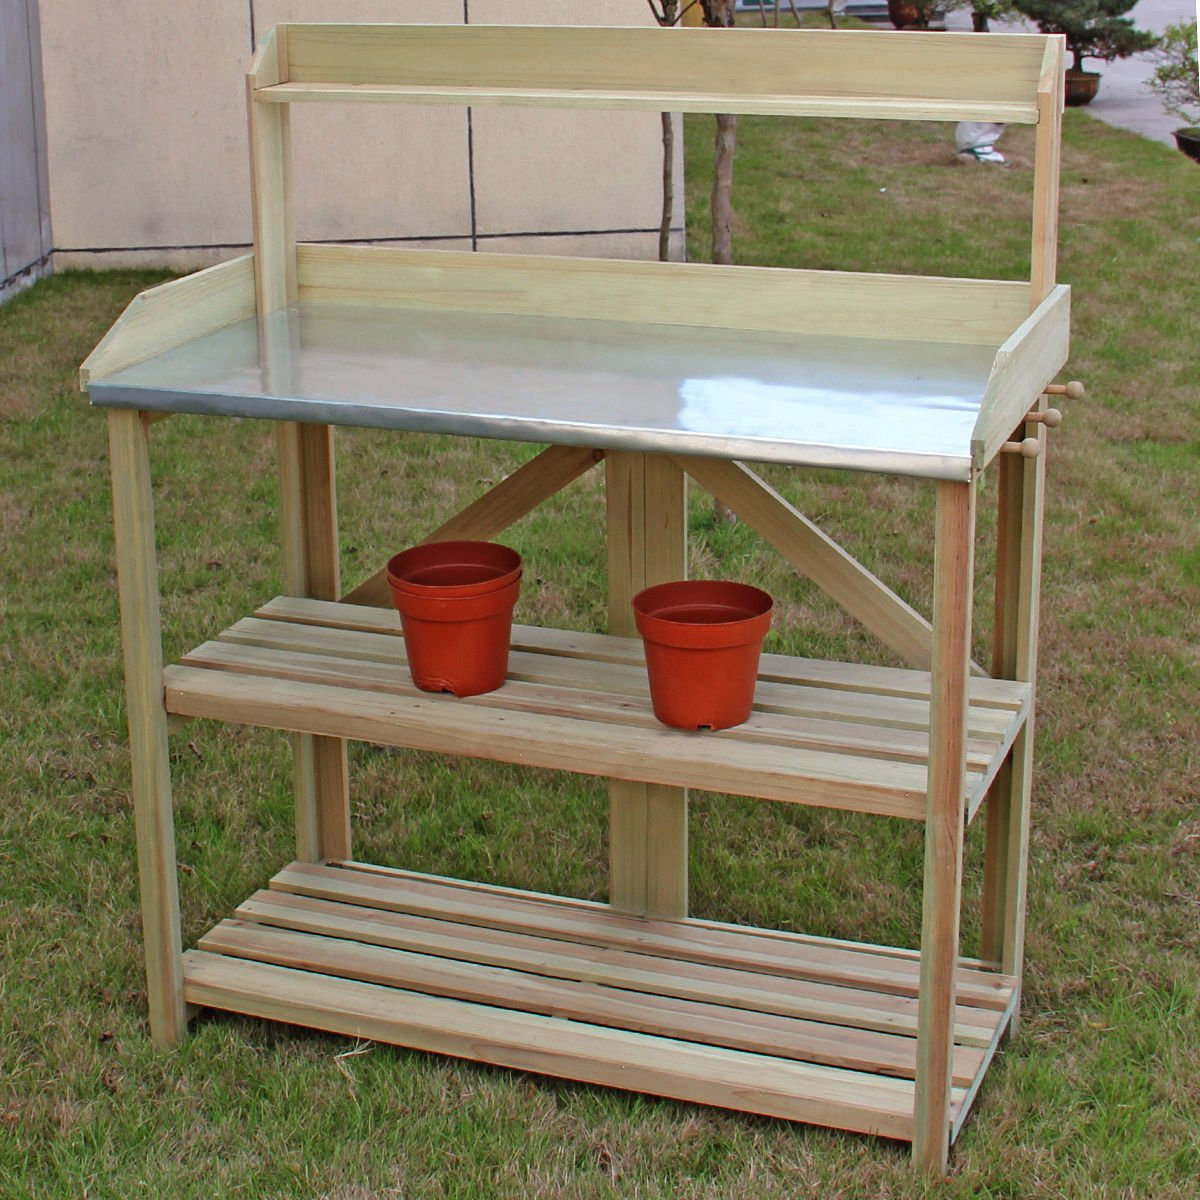 Potting Work Bench Station Planting Workbench With 3 Shelf Outdoor Garden Wooden by White Bear & Brown Rabbit (Image #7)